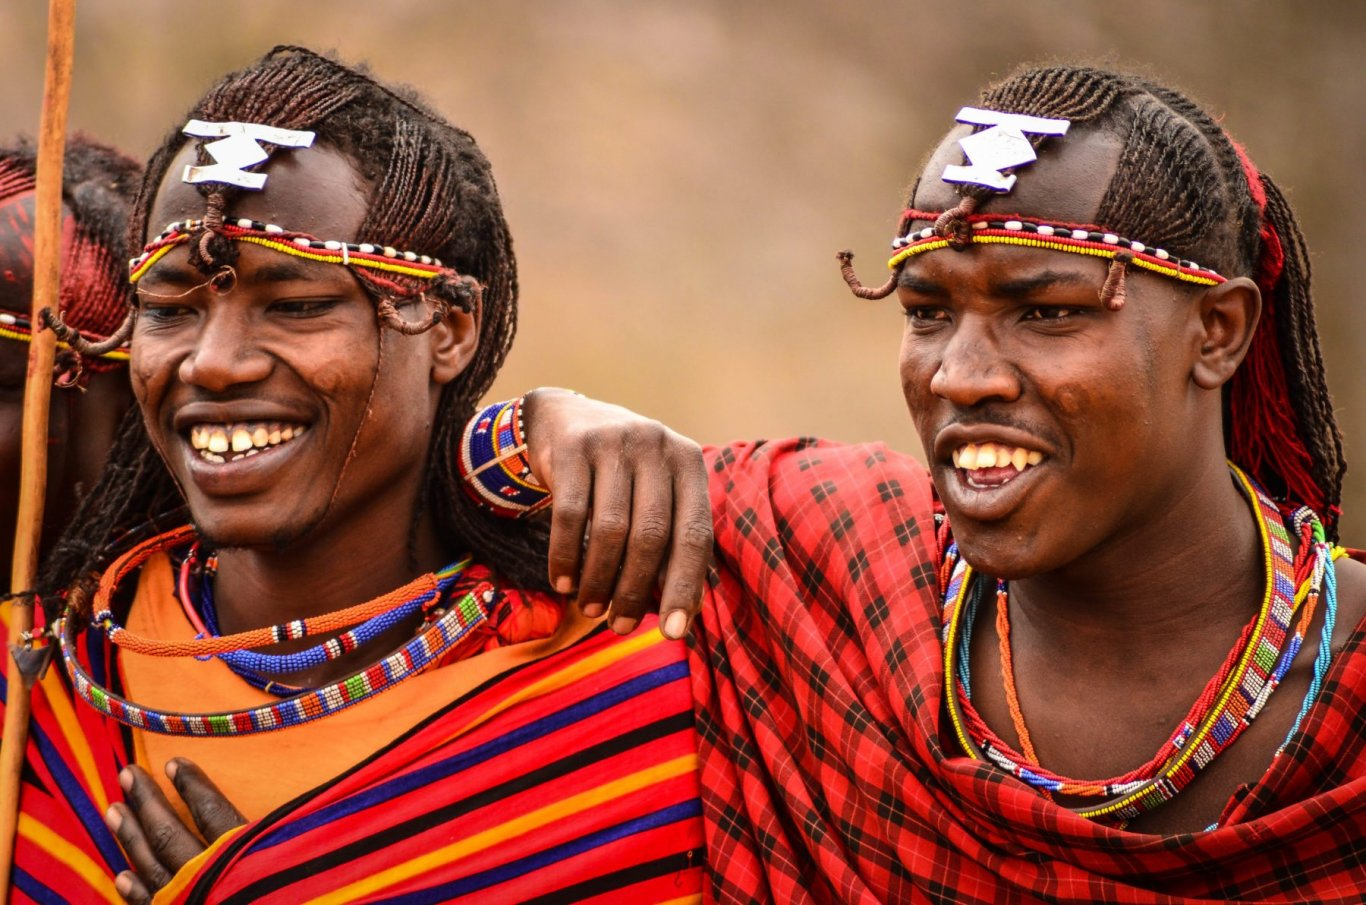 3 DAY TANZANIA GREAT CULTURAL TOURISM SAFARI